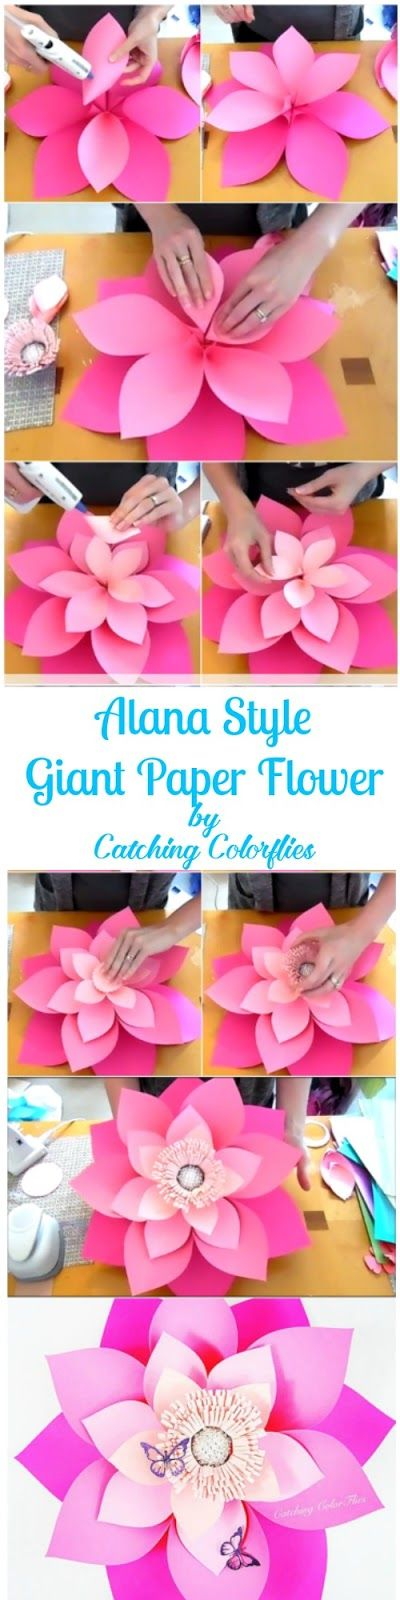 20 creative paper flower diy projects for your home decoration diy alana style layered paper flower mightylinksfo